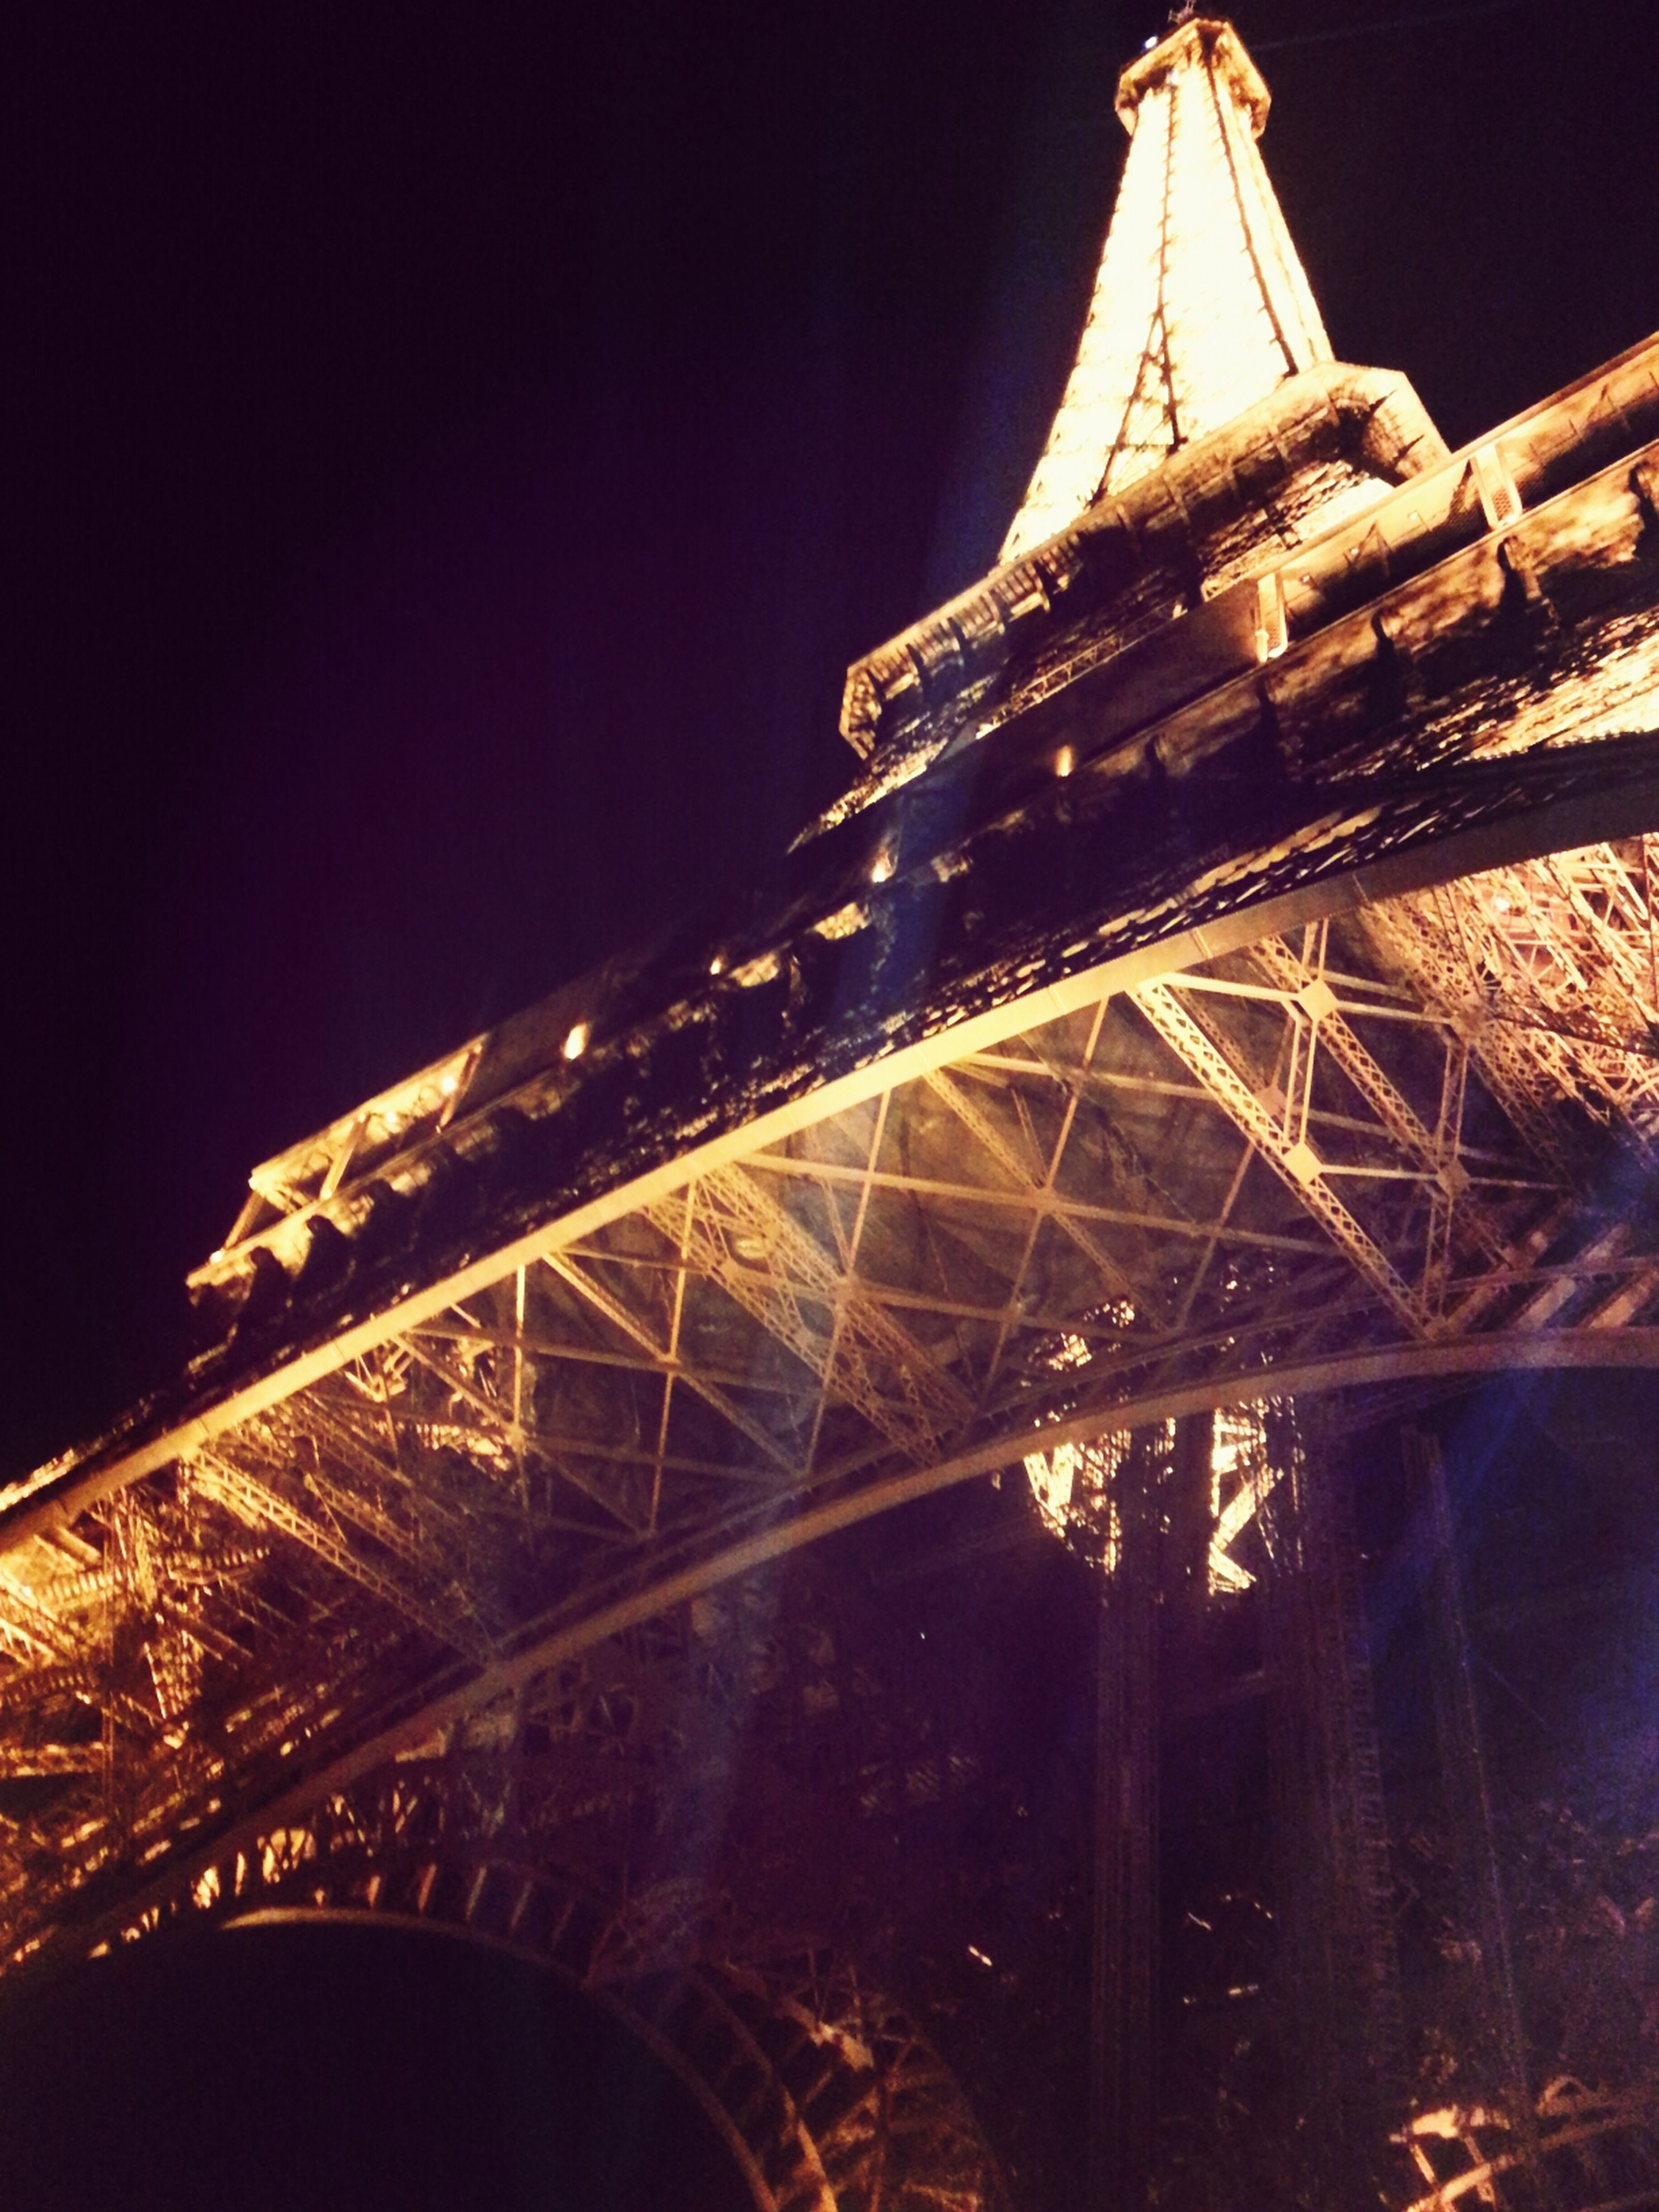 architecture, built structure, famous place, international landmark, travel destinations, night, tourism, capital cities, eiffel tower, travel, low angle view, tower, clear sky, illuminated, building exterior, tall - high, culture, history, city, engineering